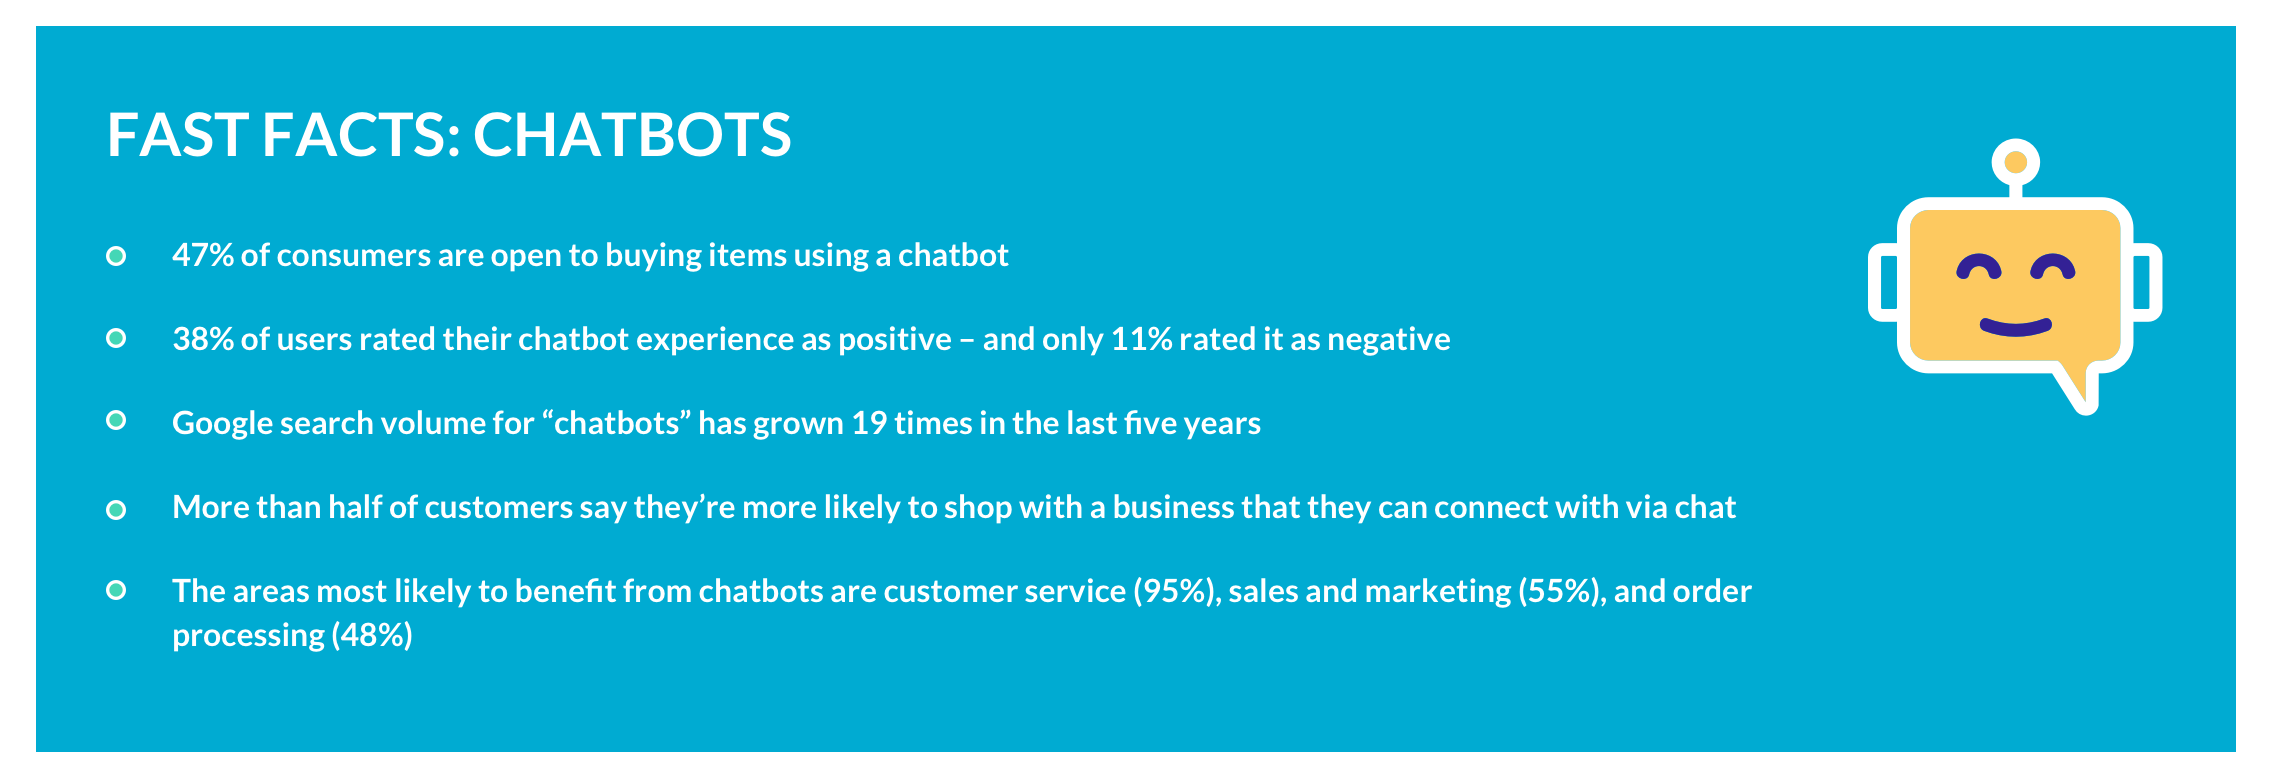 fast facts about chatbots